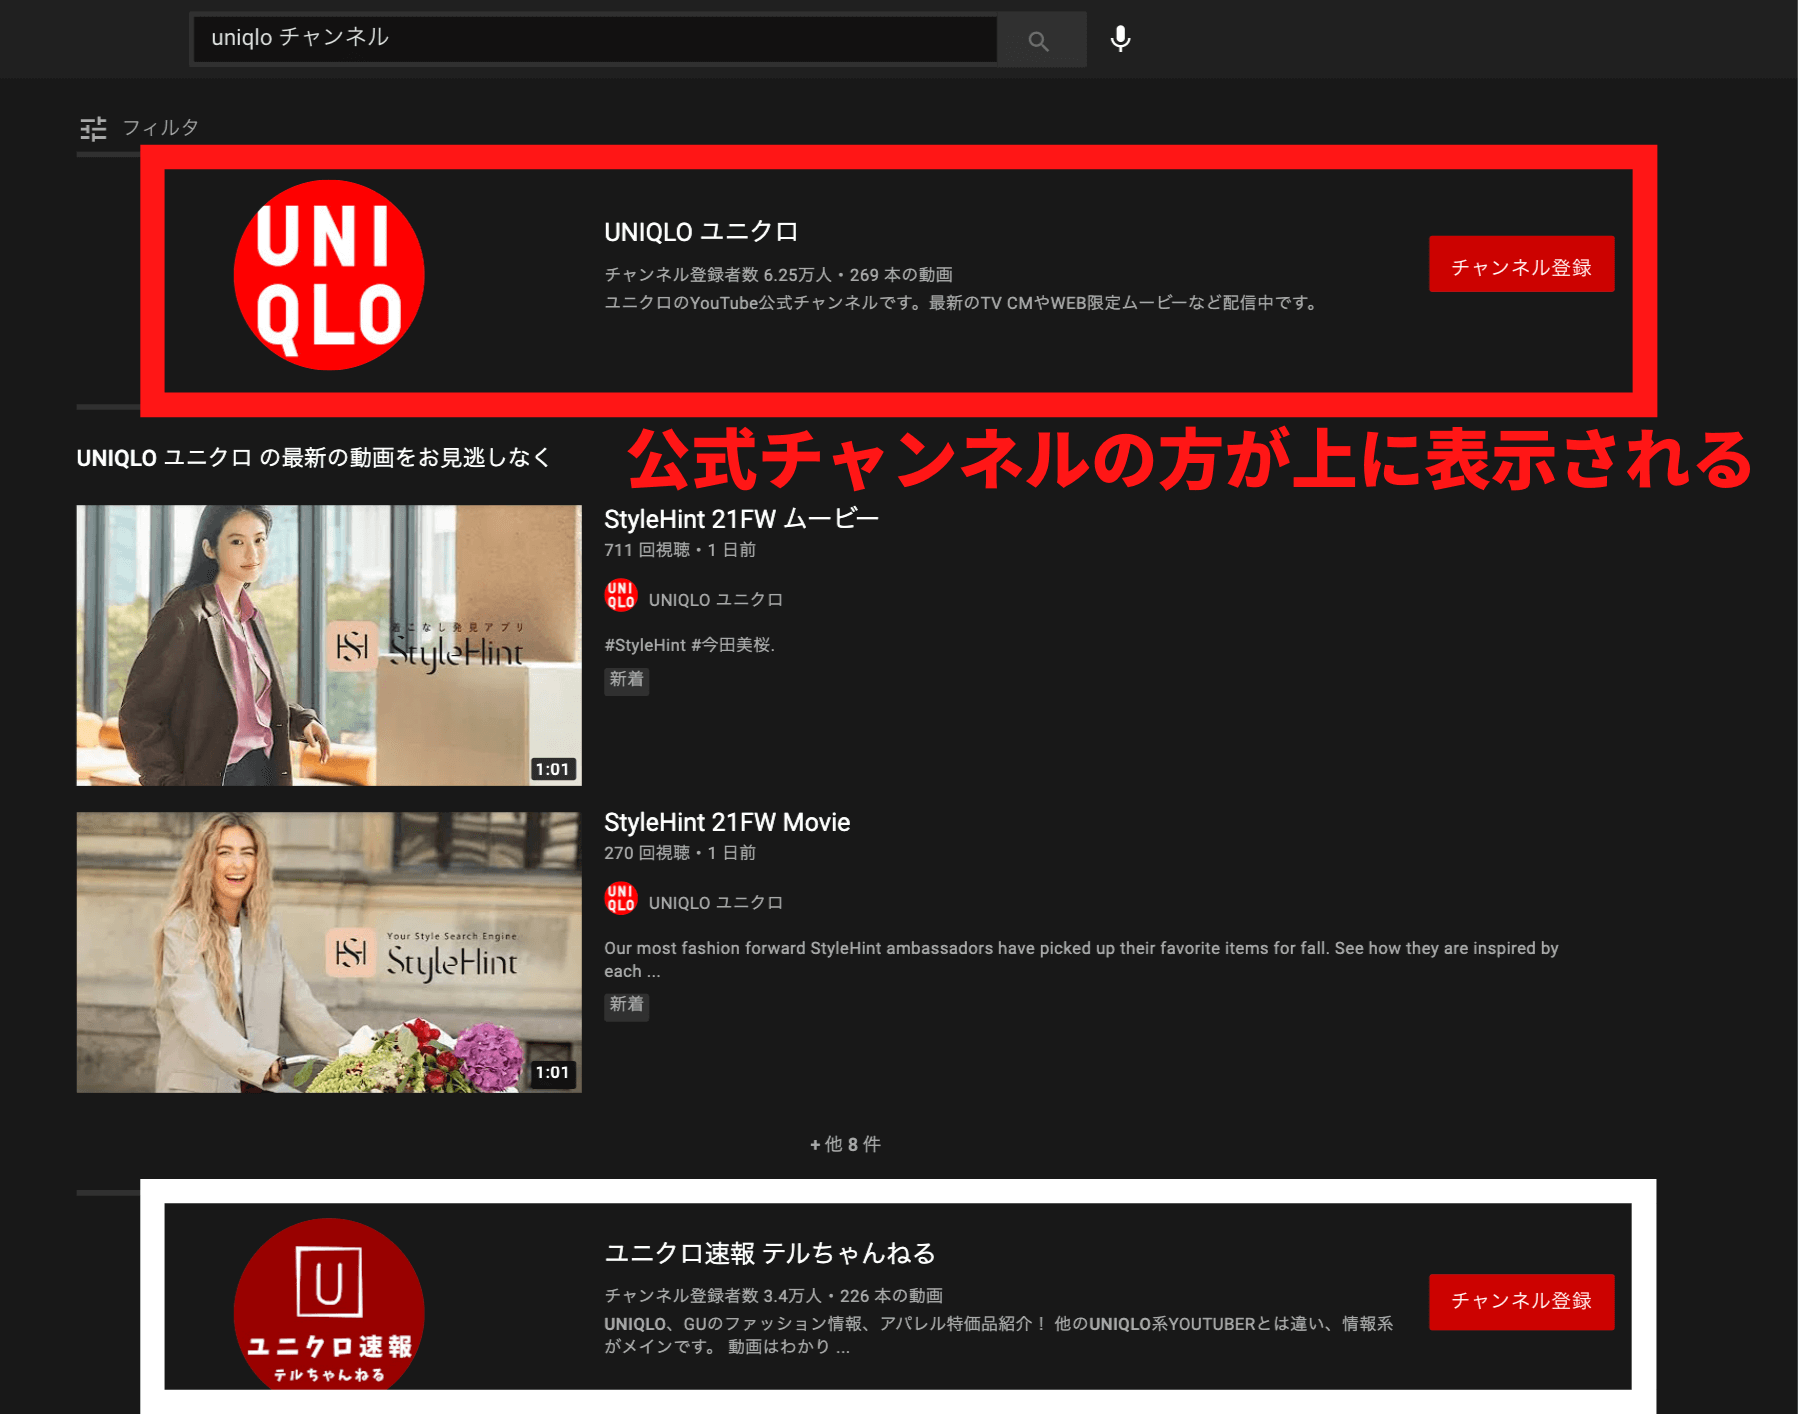 youtube-official channnel-top display